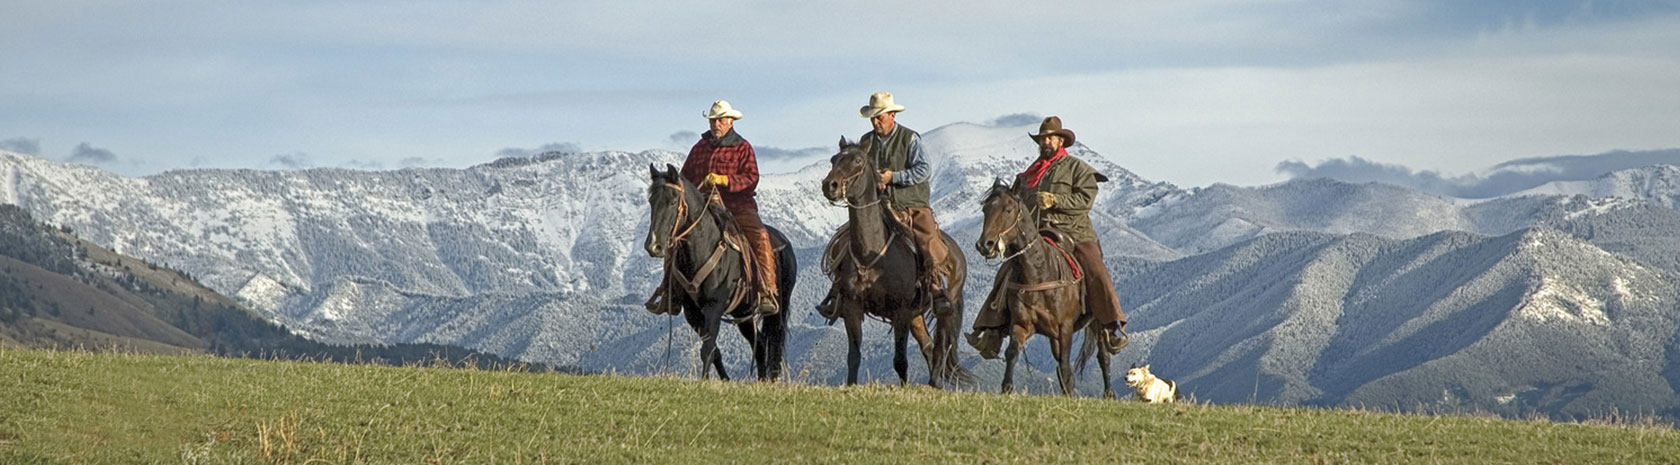 Three ranchers on horseback along side a white dog riding up over the top of a grassy plain with rolling hills in the background